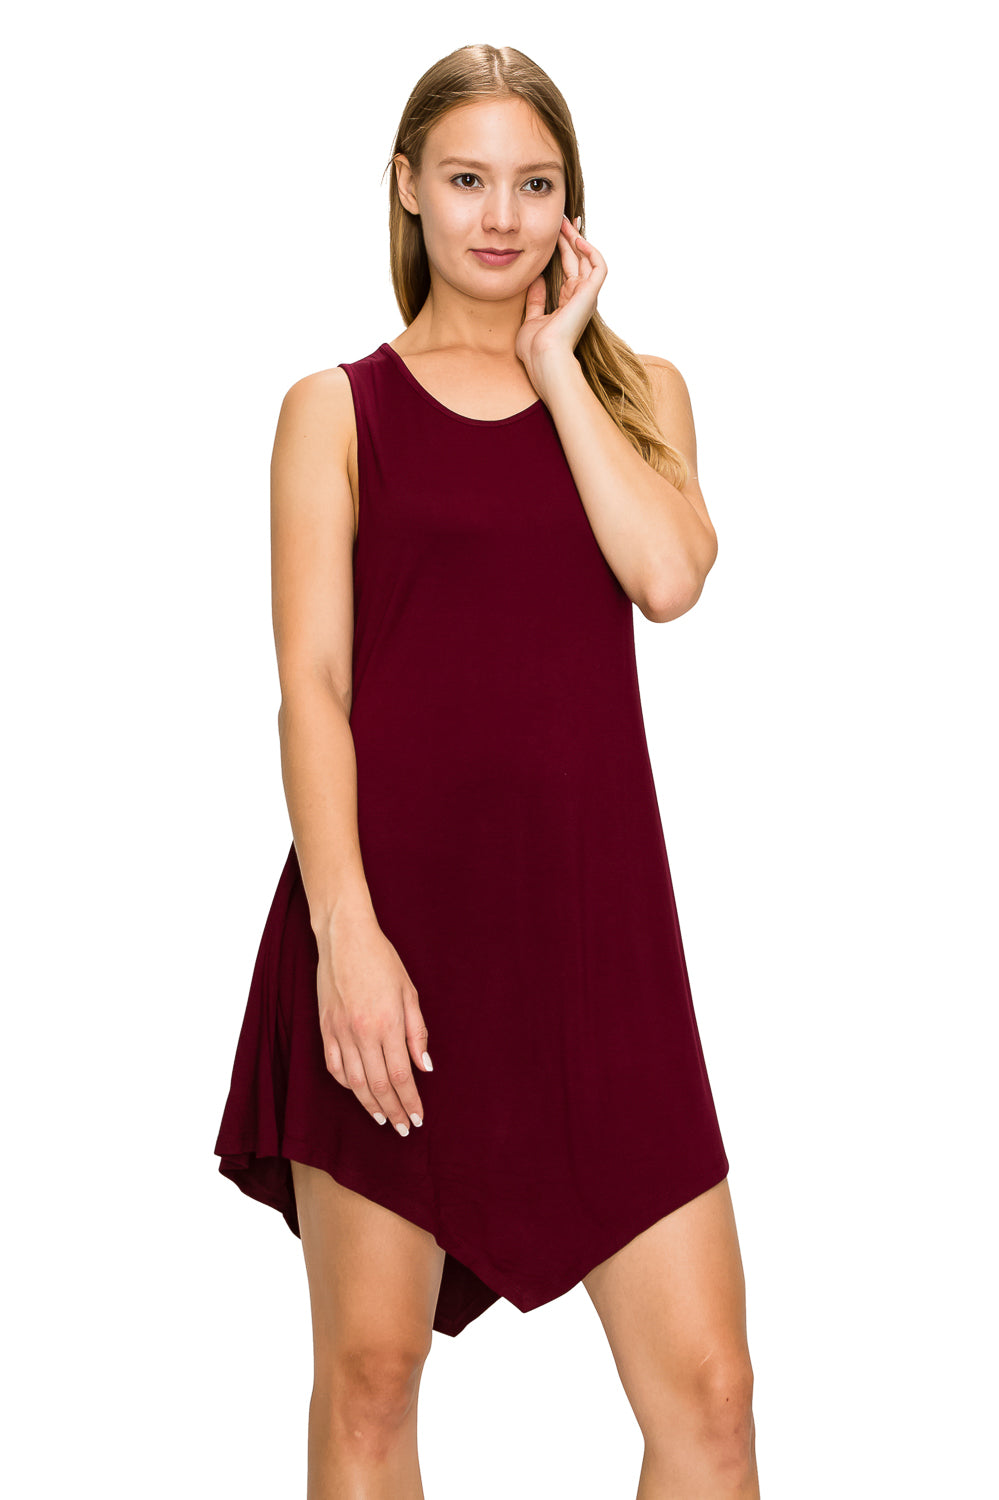 D. Burgundy Sleeveless Tank Tunic - Poplooks